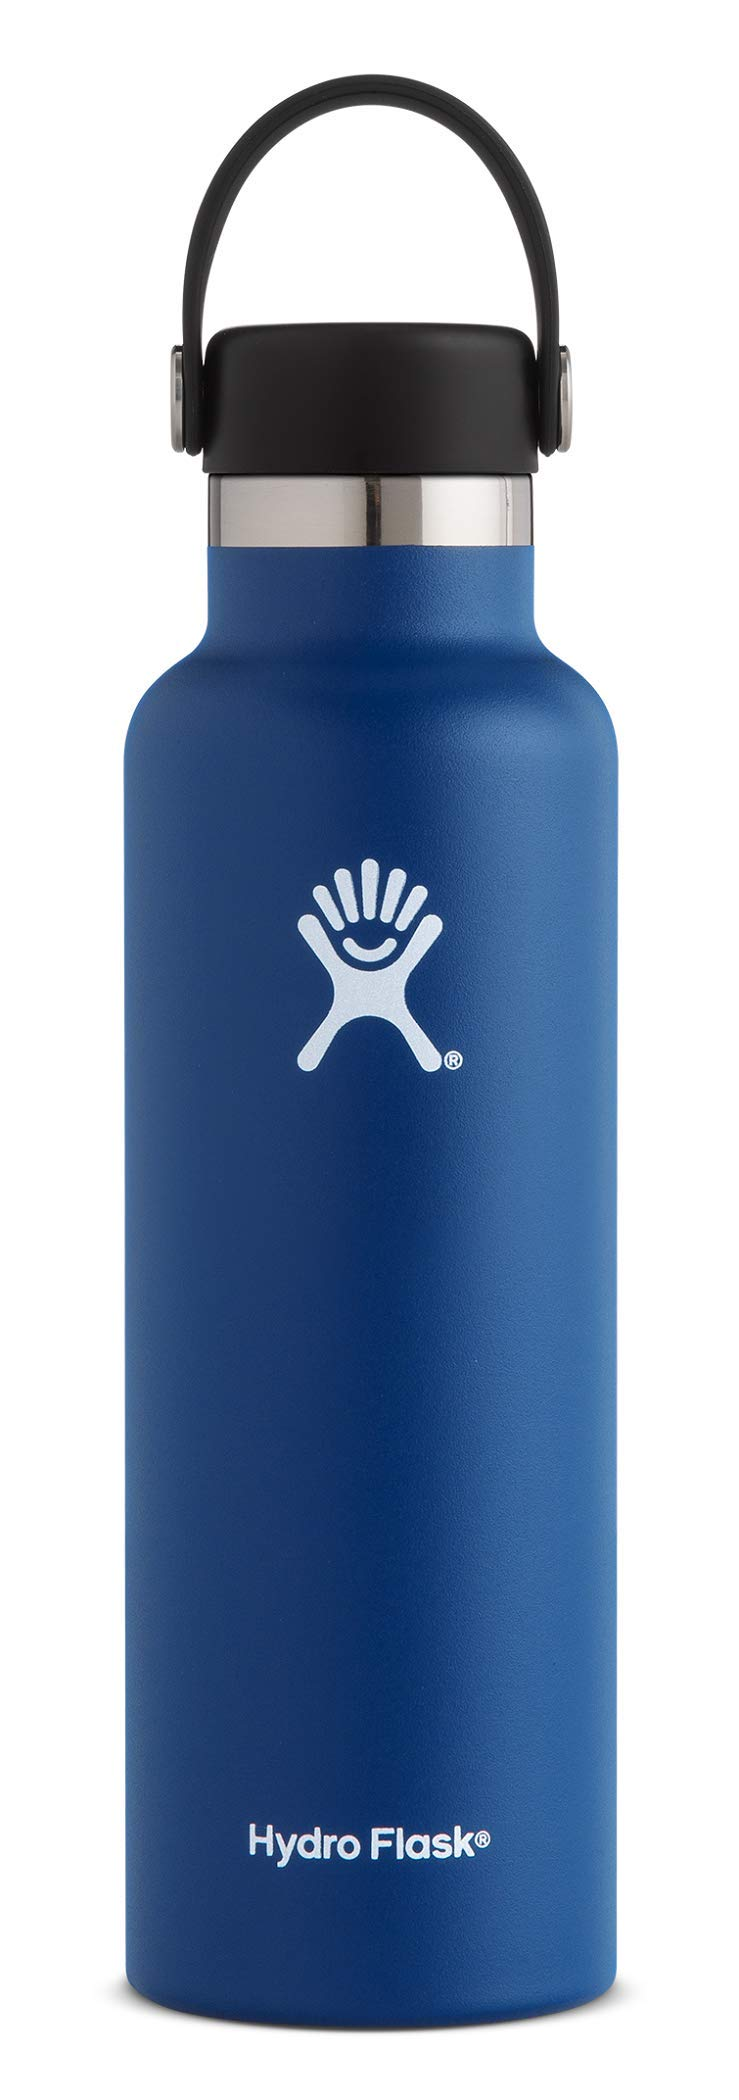 Hydro Flask Water Bottle - Stainless Steel & Vacuum Insulated - Standard Mouth with Leak Proof Flex Cap - 21 oz, Cobalt by Hydro Flask